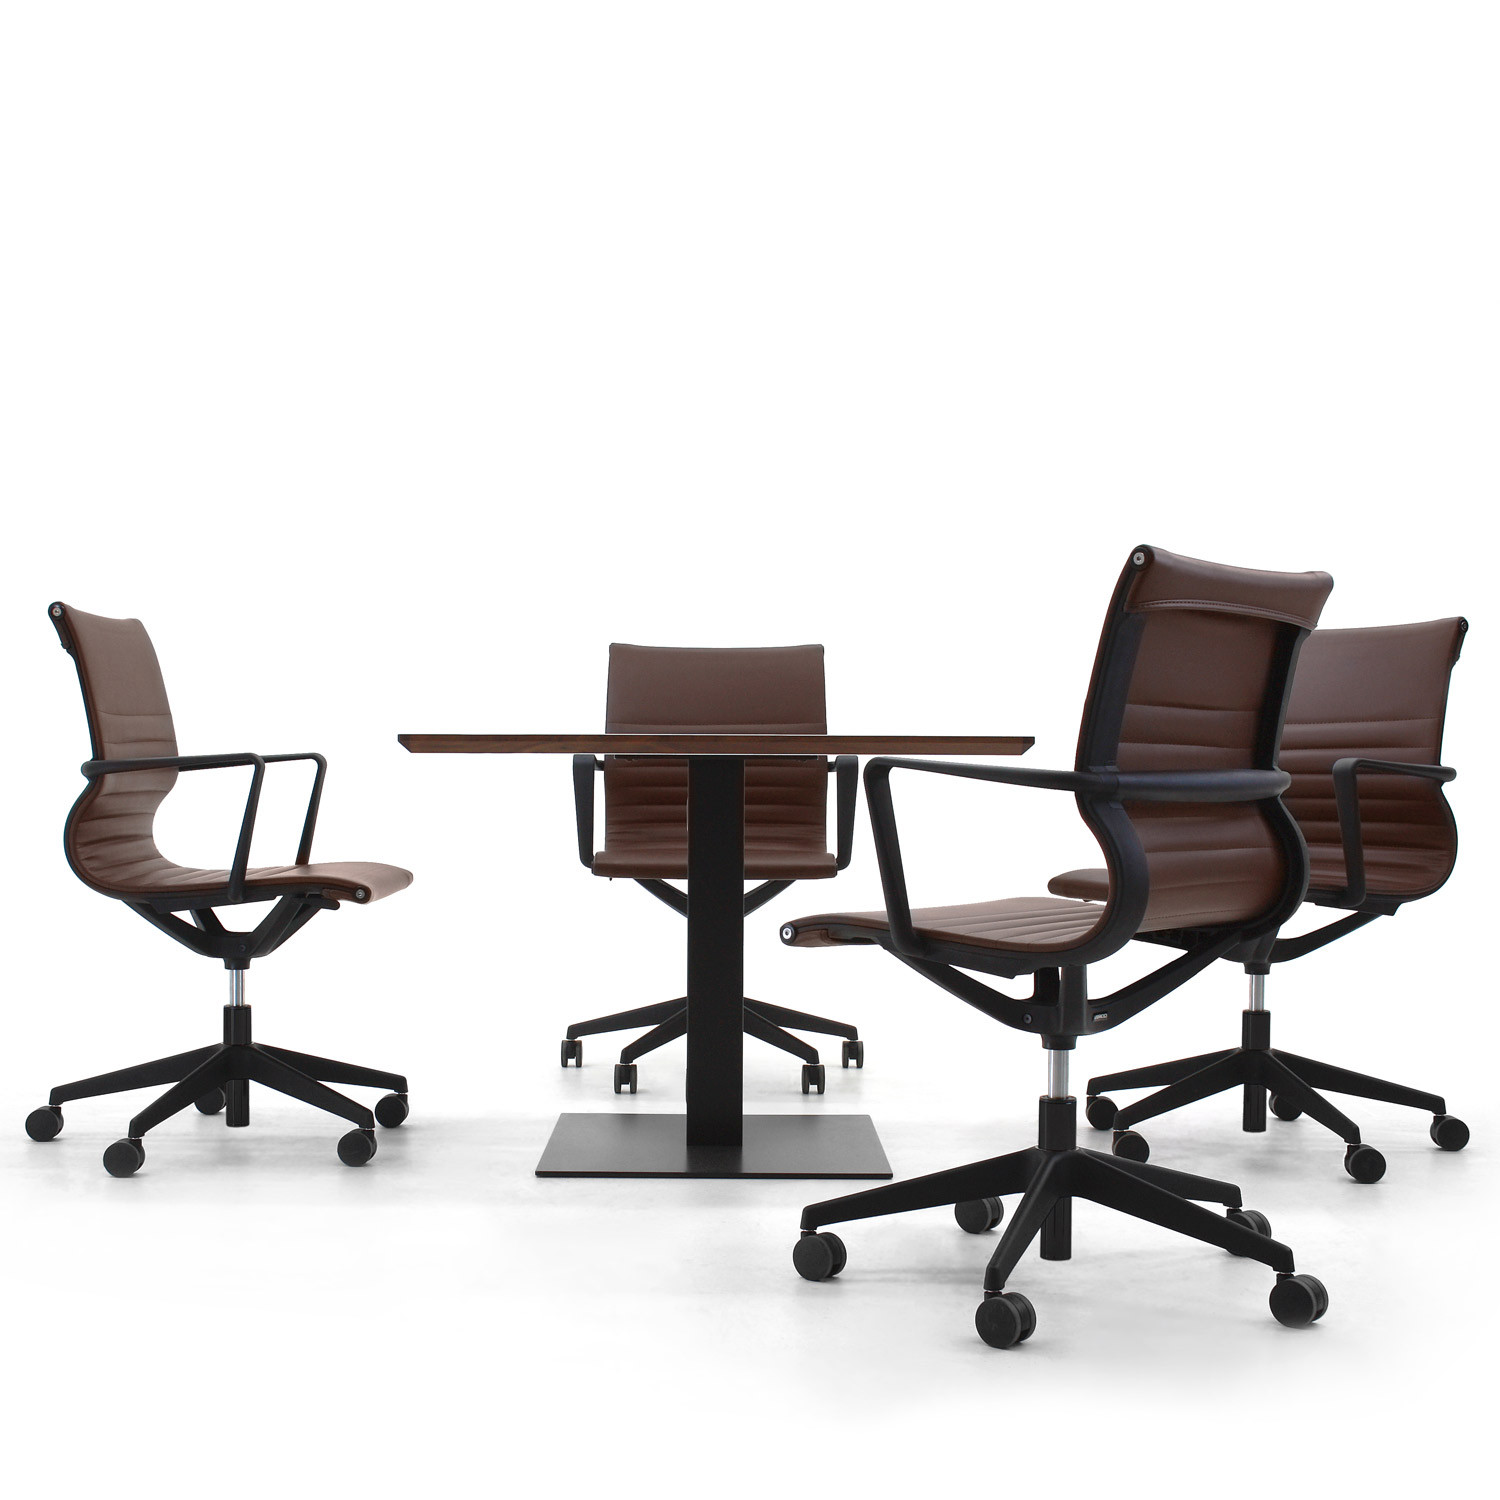 Flux Chair  Light Task Chairs  Apres Furniture